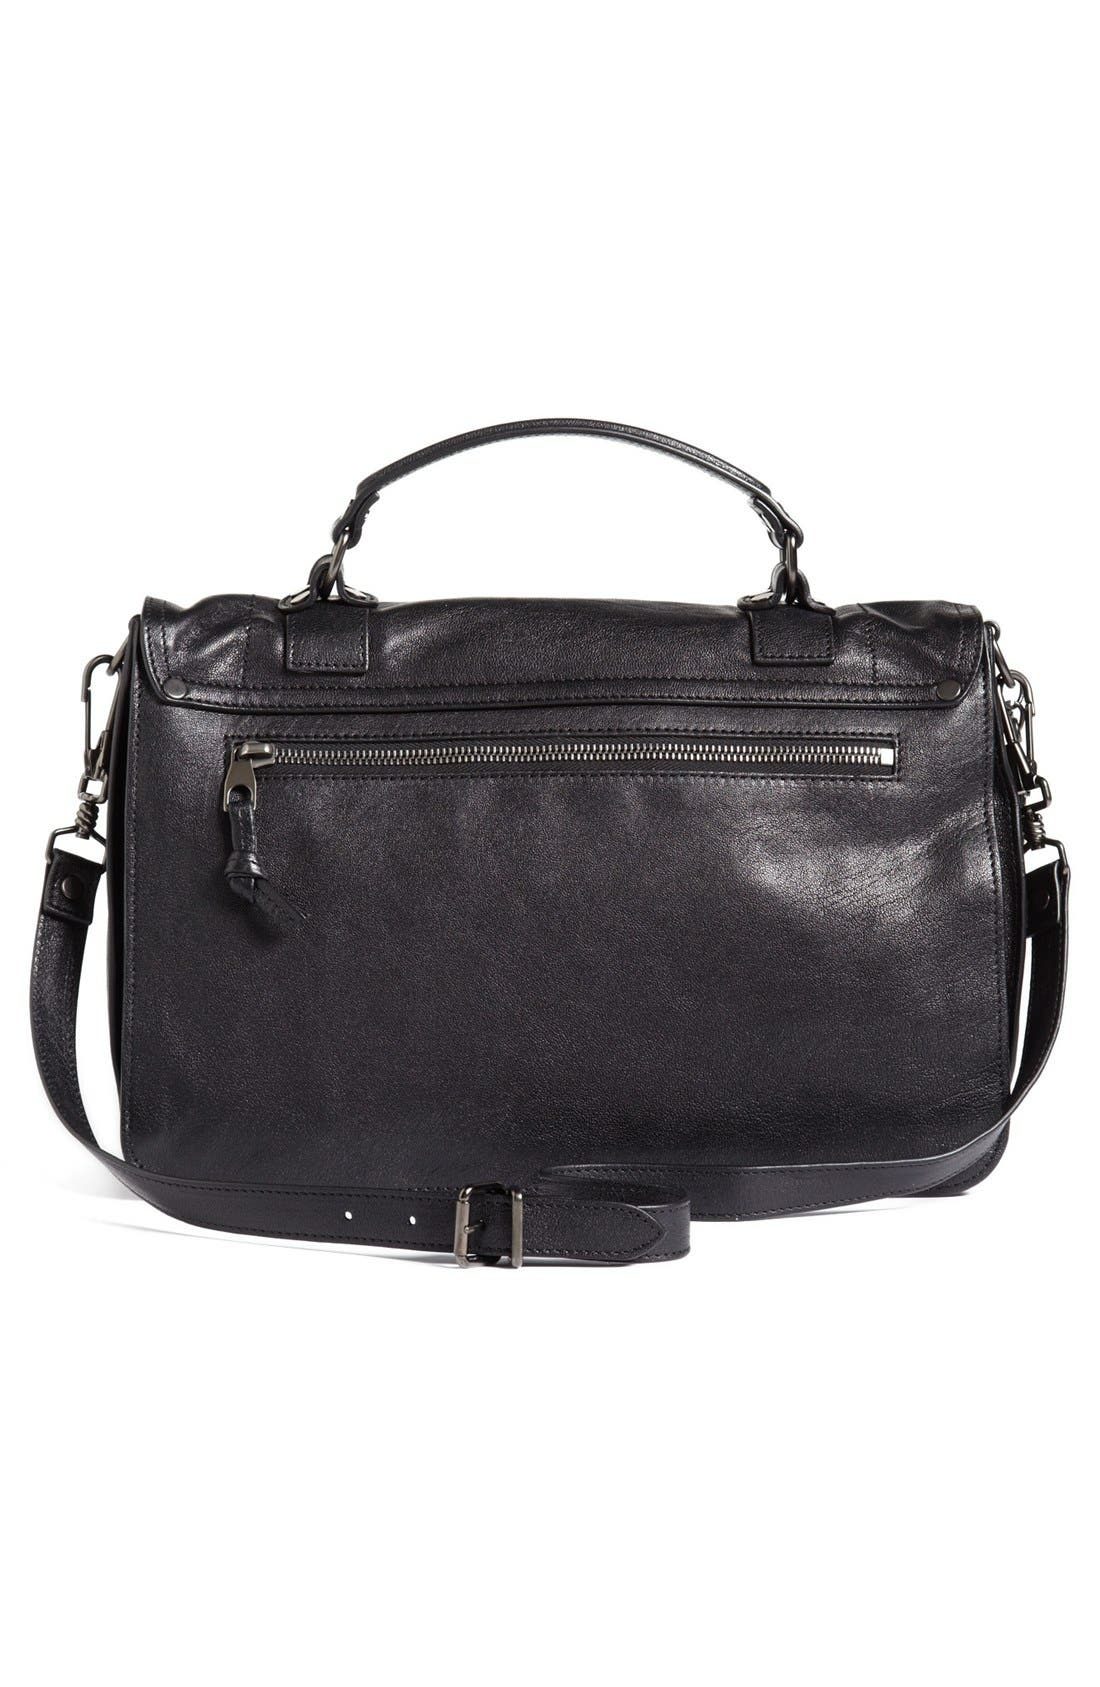 'Medium PS1' Satchel,                             Alternate thumbnail 3, color,                             BLACK